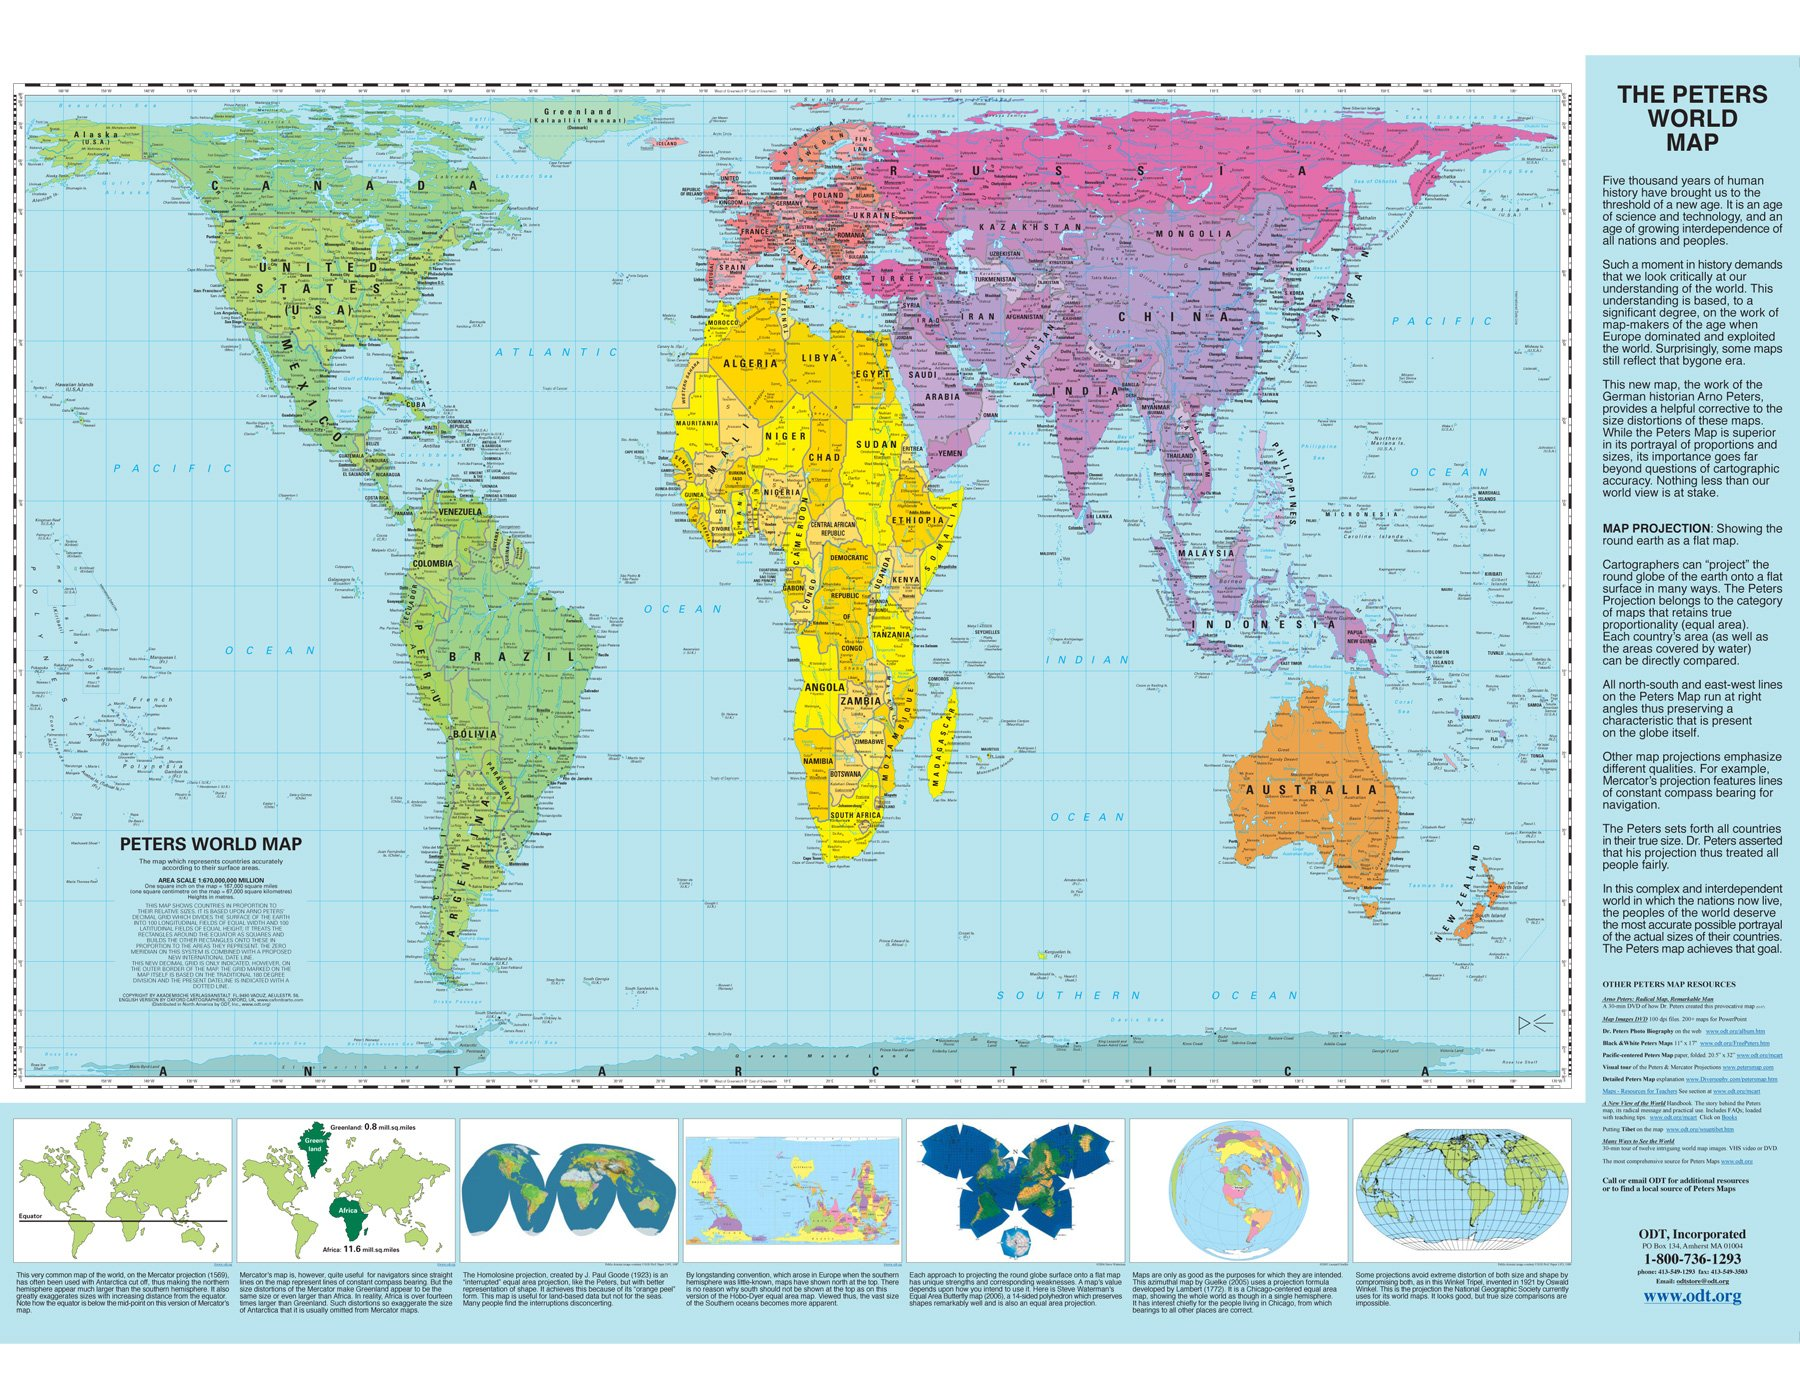 True Size Map Of The World.Peters Projection World Map Laminated Arno Peters Odtmaps Com